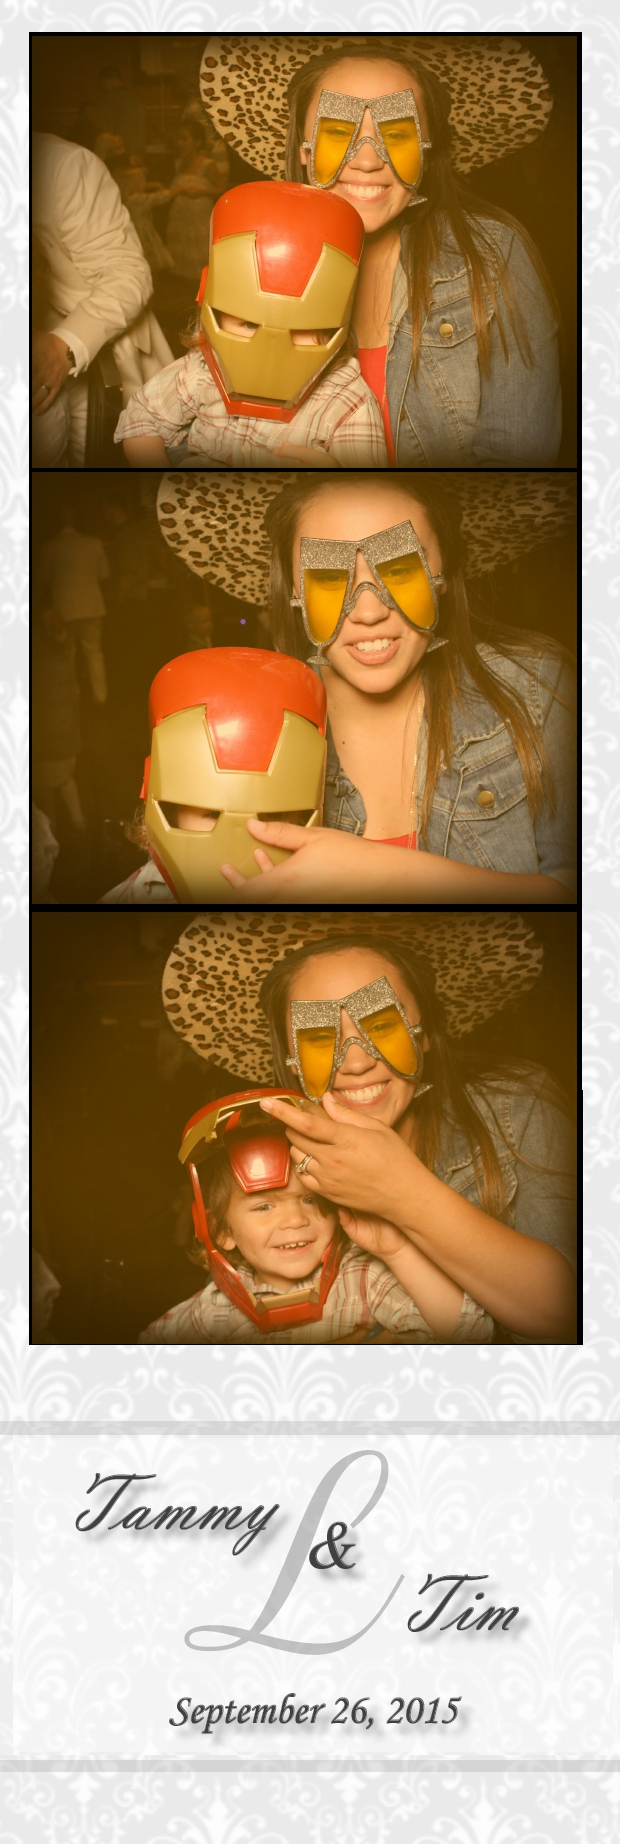 Guest House Events Photo Booth Strips T&T (30).jpg